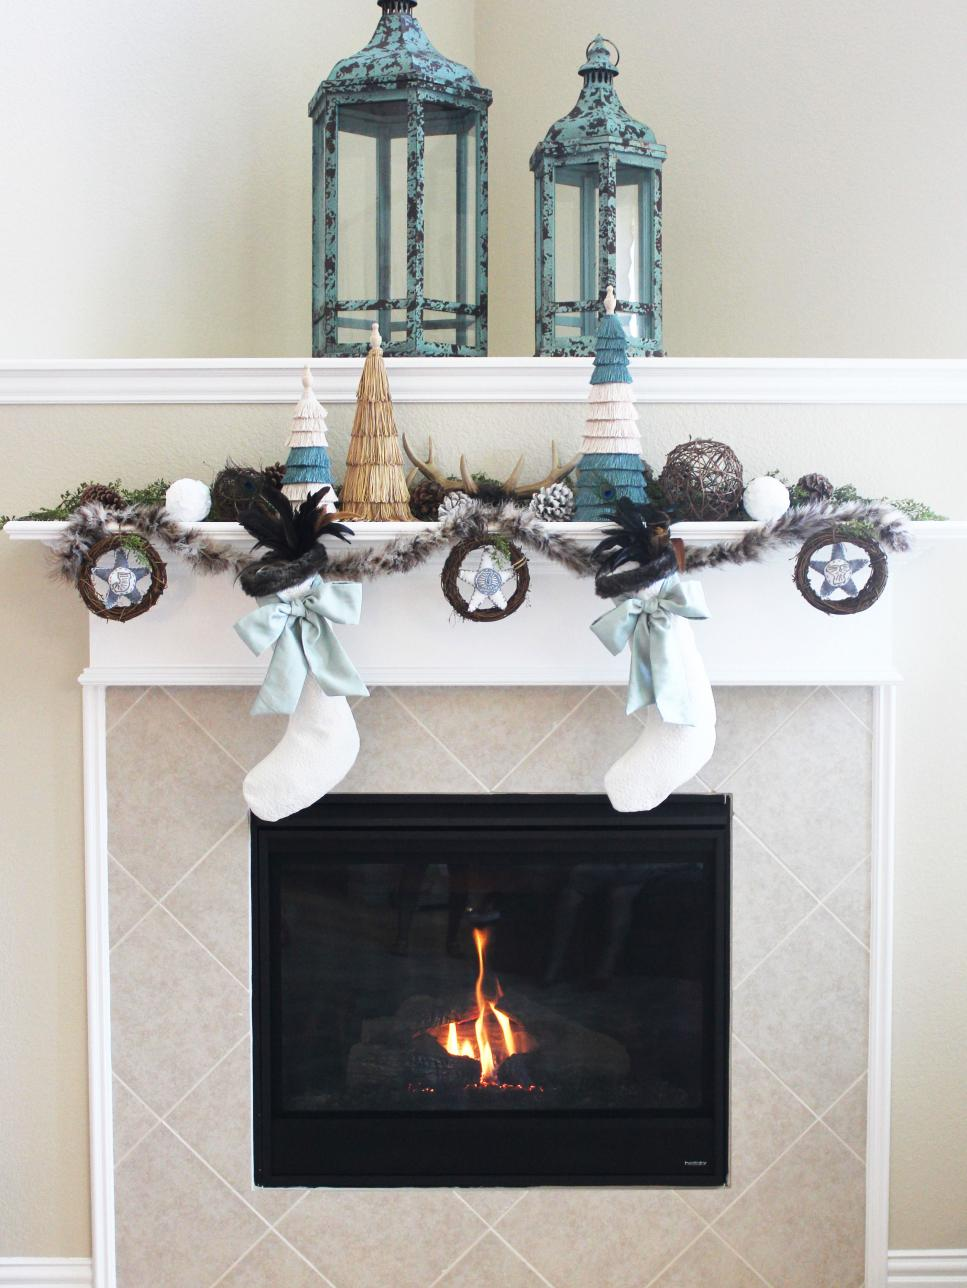 Use Blue Metal Lanterns To Decorate Christmas Fireplace Mantel Decor For  Interesting Sitting Room